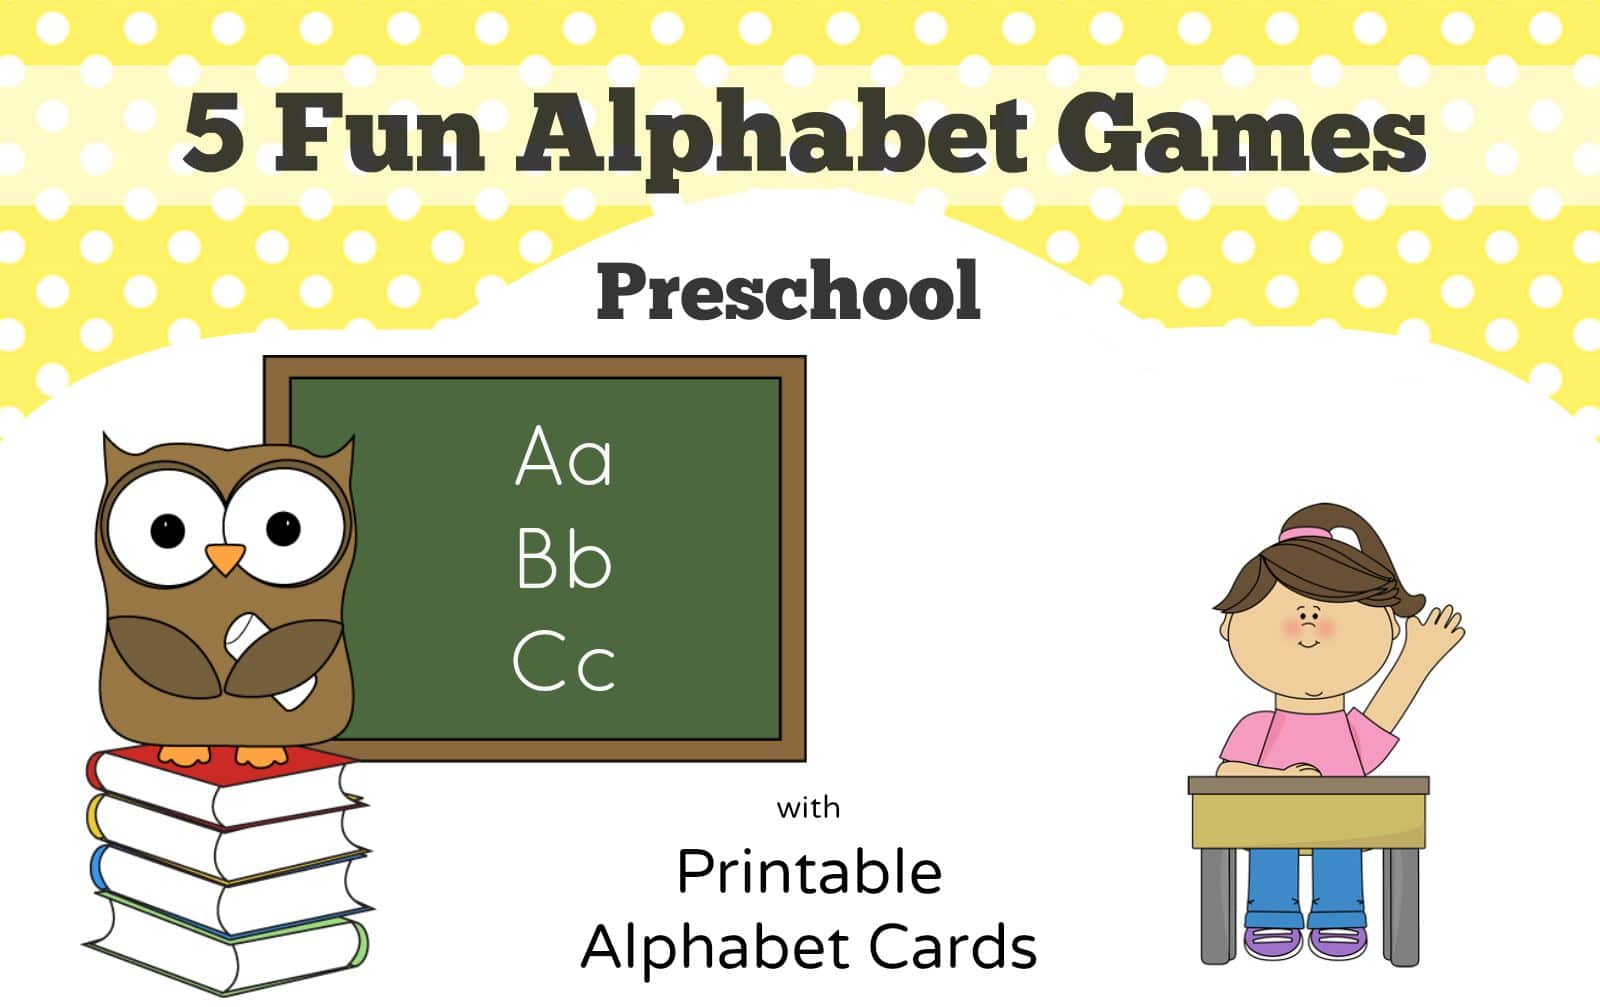 5 Fun Preschool Alphabet Games - Planning Playtime